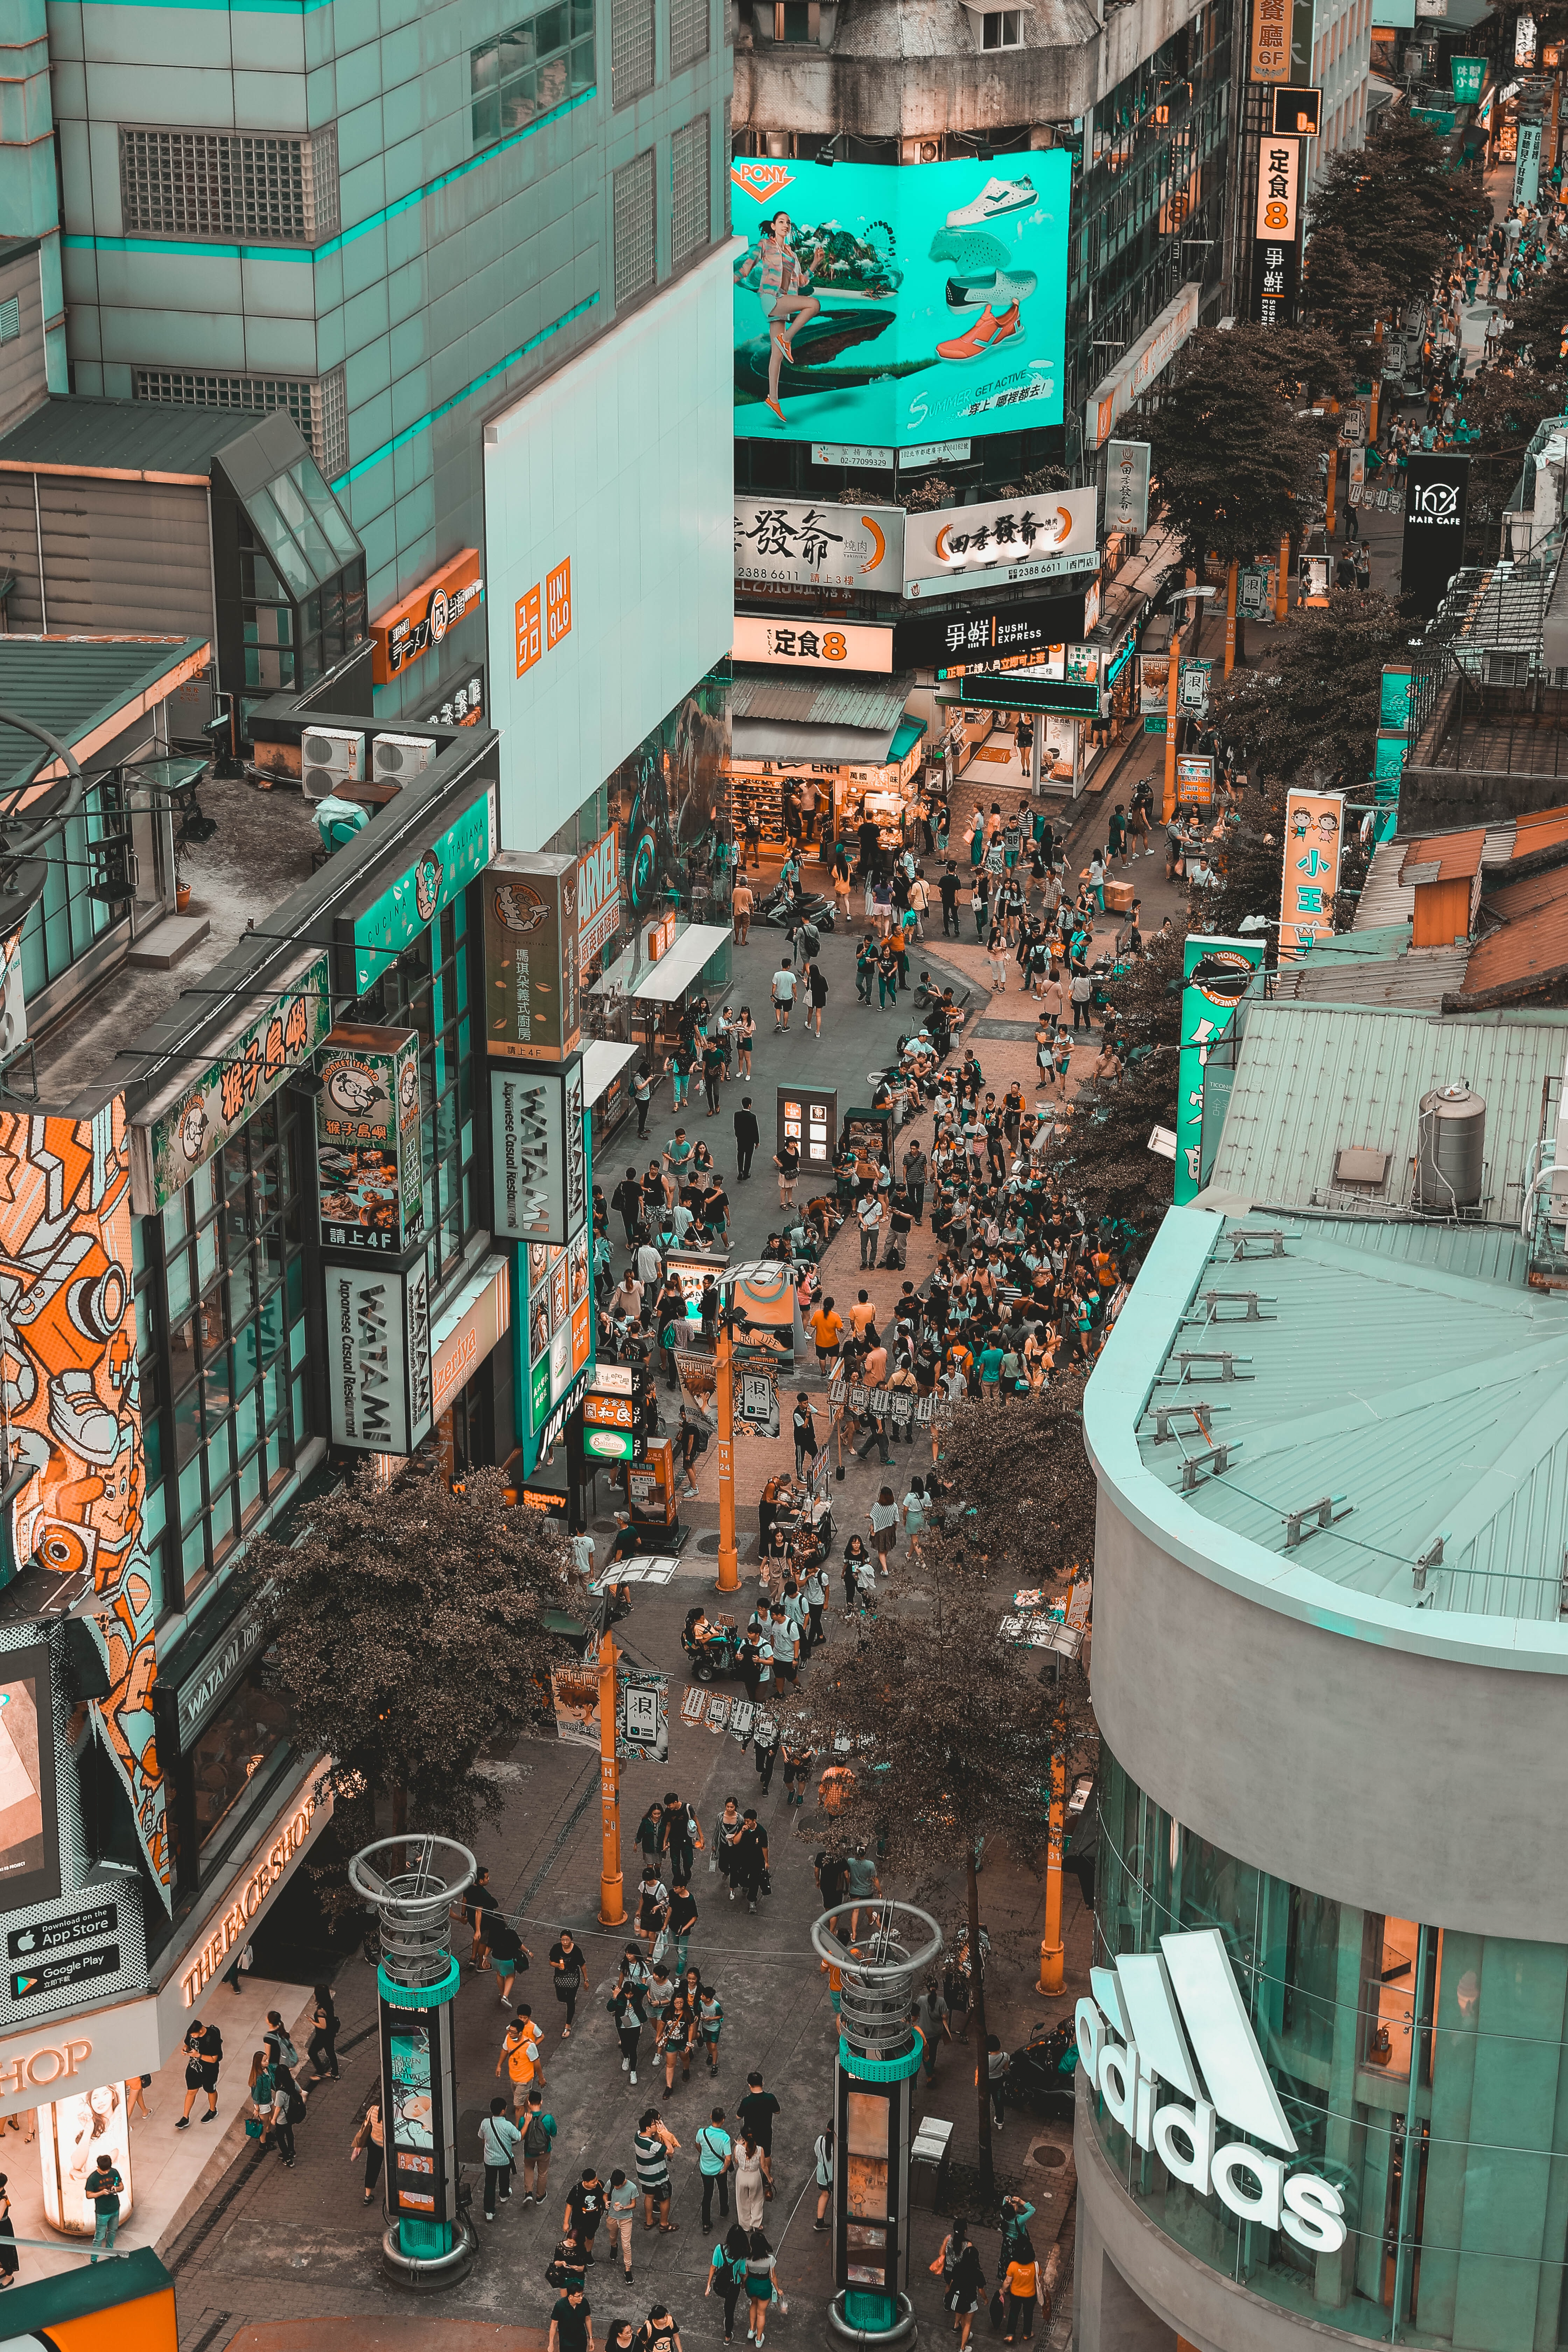 A high shot of pedestrians strolling in a shopping district